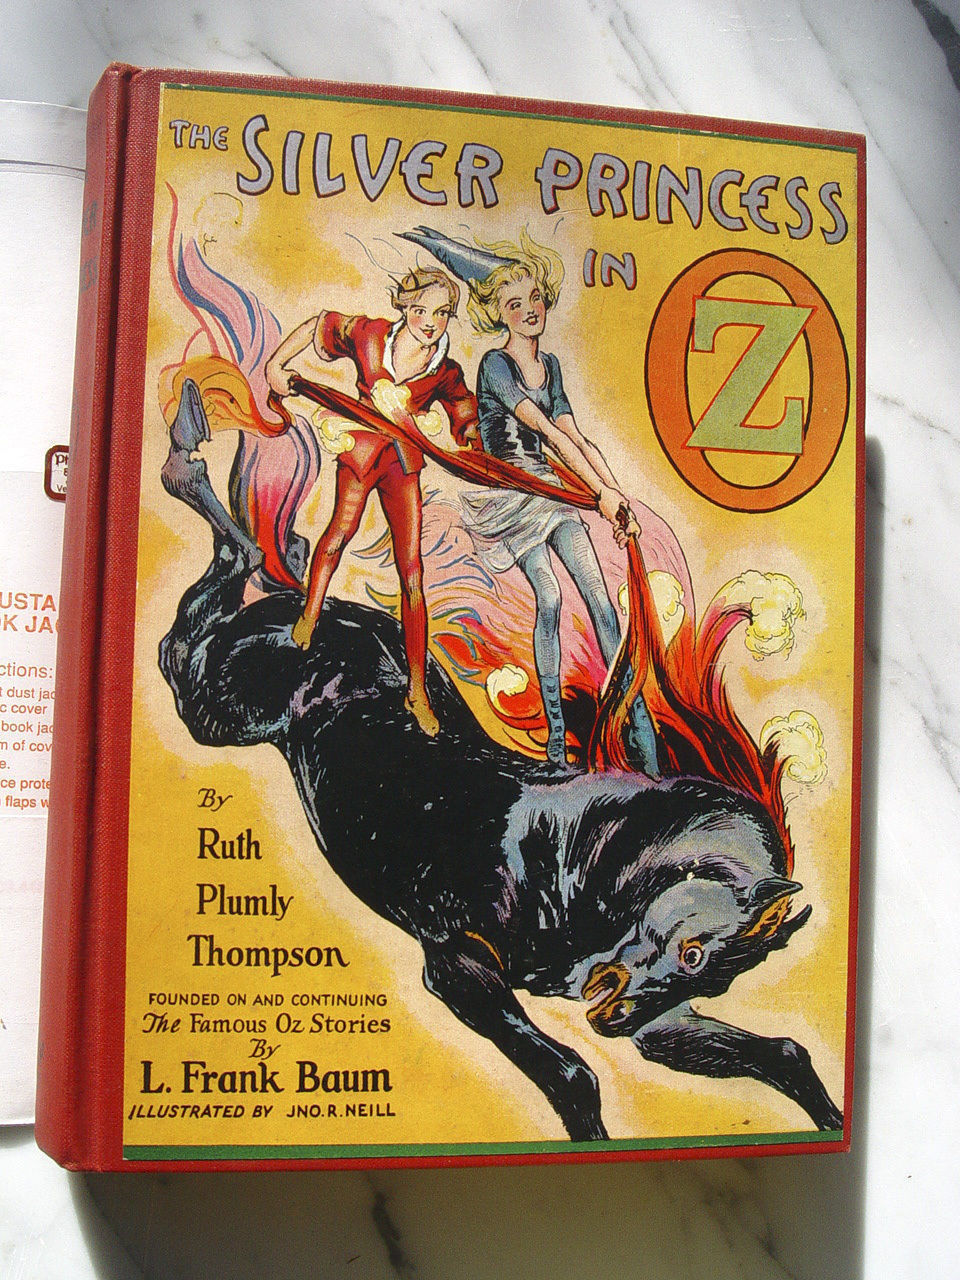 Ruth Plumly Thompson - L. Frank Baum - THE SILVER PRINCESS IN OZ 1st - Look!: -)